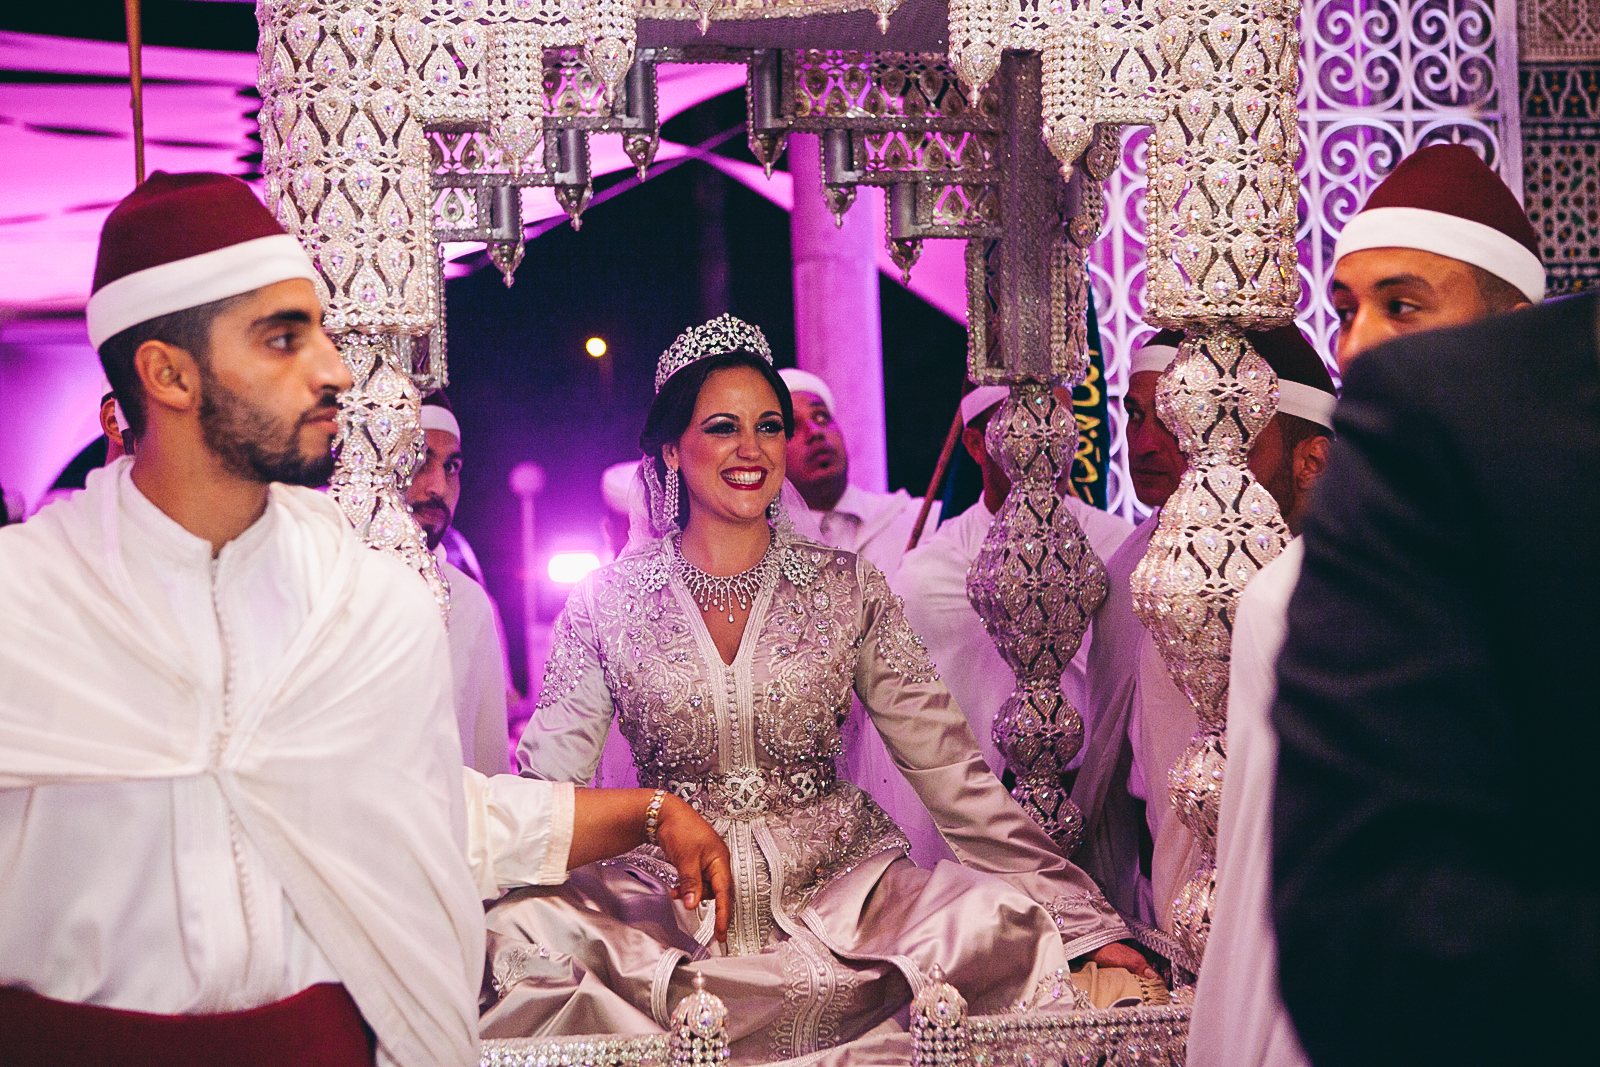 traditional_moroccan_wedding_photographry_casablanca_morocco_houda_vivek_ebony_siovhan_bokeh_photography_059.jpg